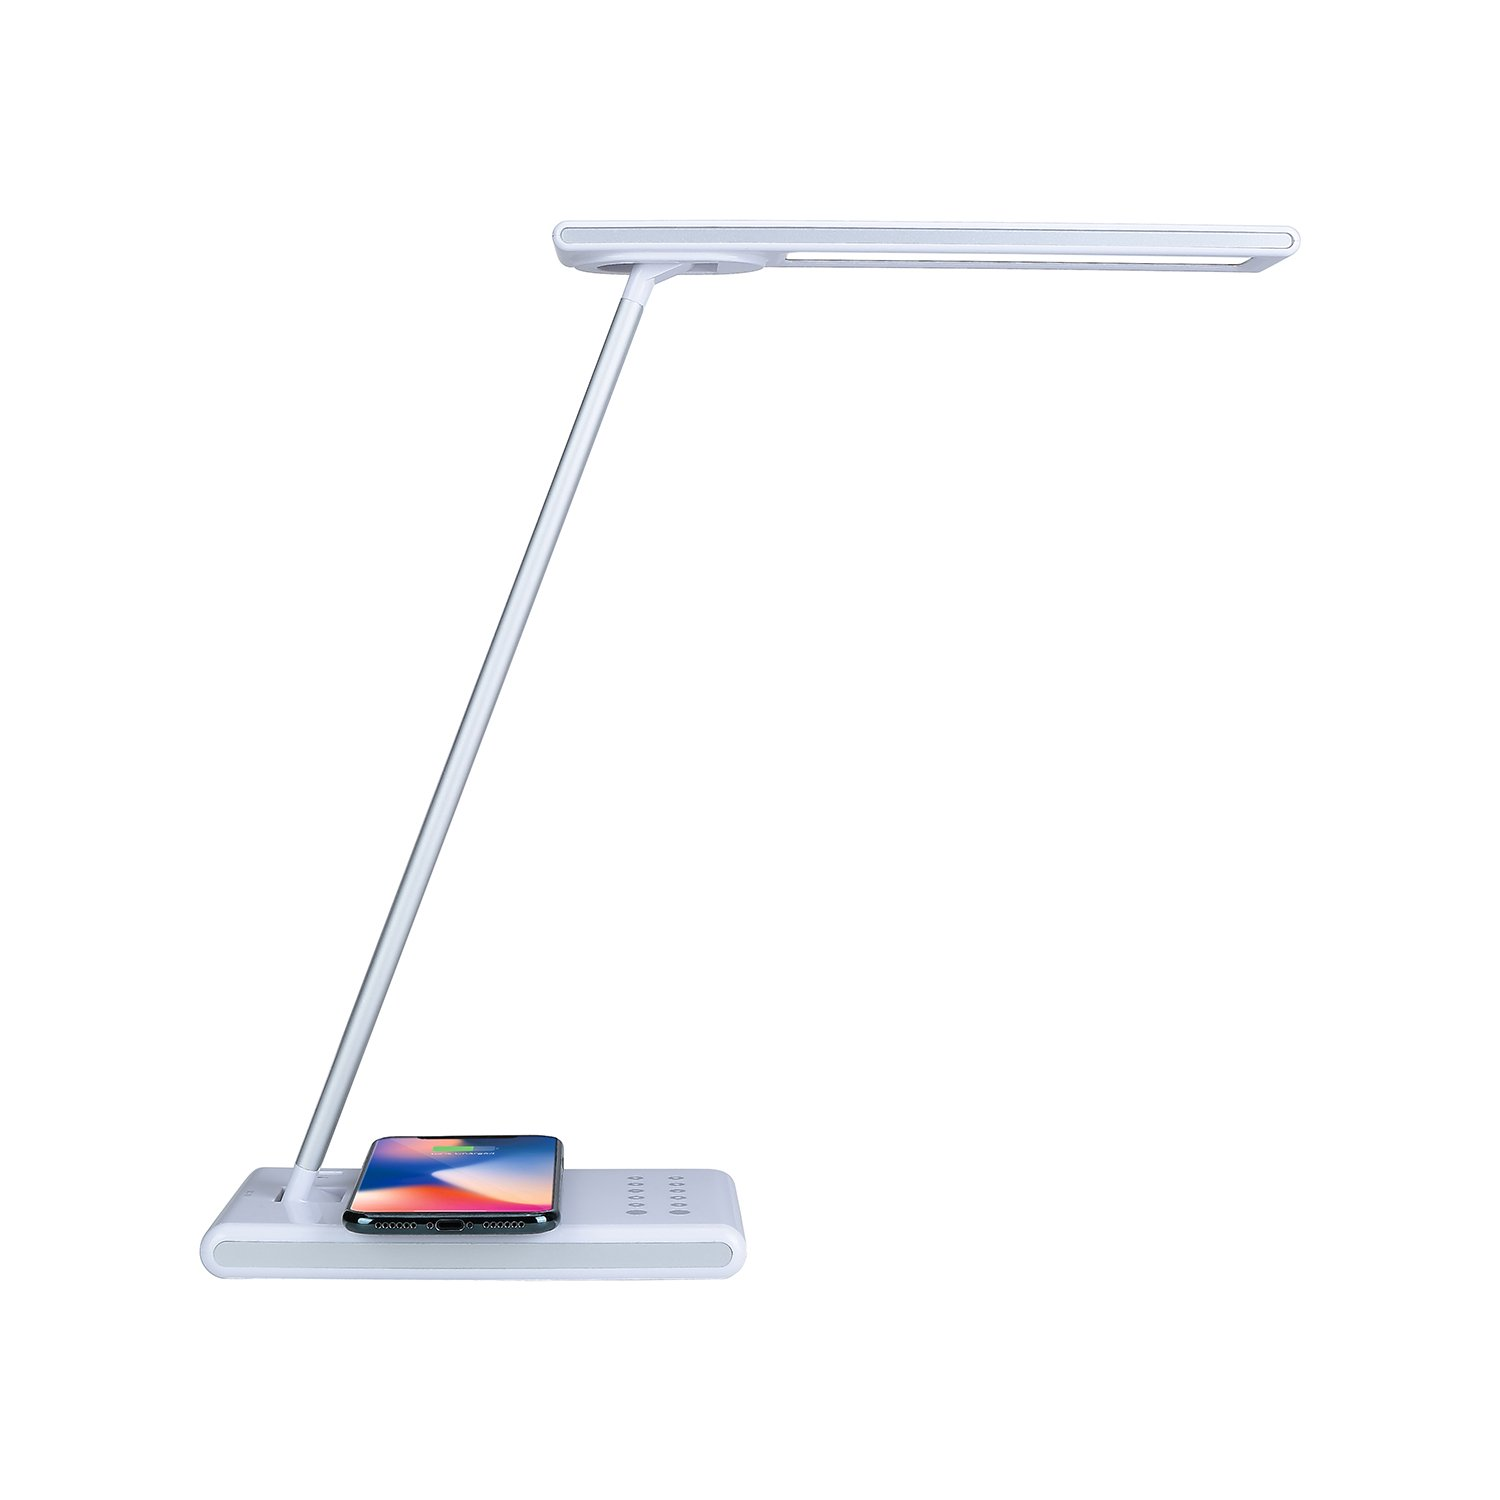 White Dimmable LED Light Desk Lamp with USB & Wireless Charging Ports – Adjustable Brightness & Color Temperature Bulb - Multi Directional Lighting – Energy Efficient by Dependable Direct